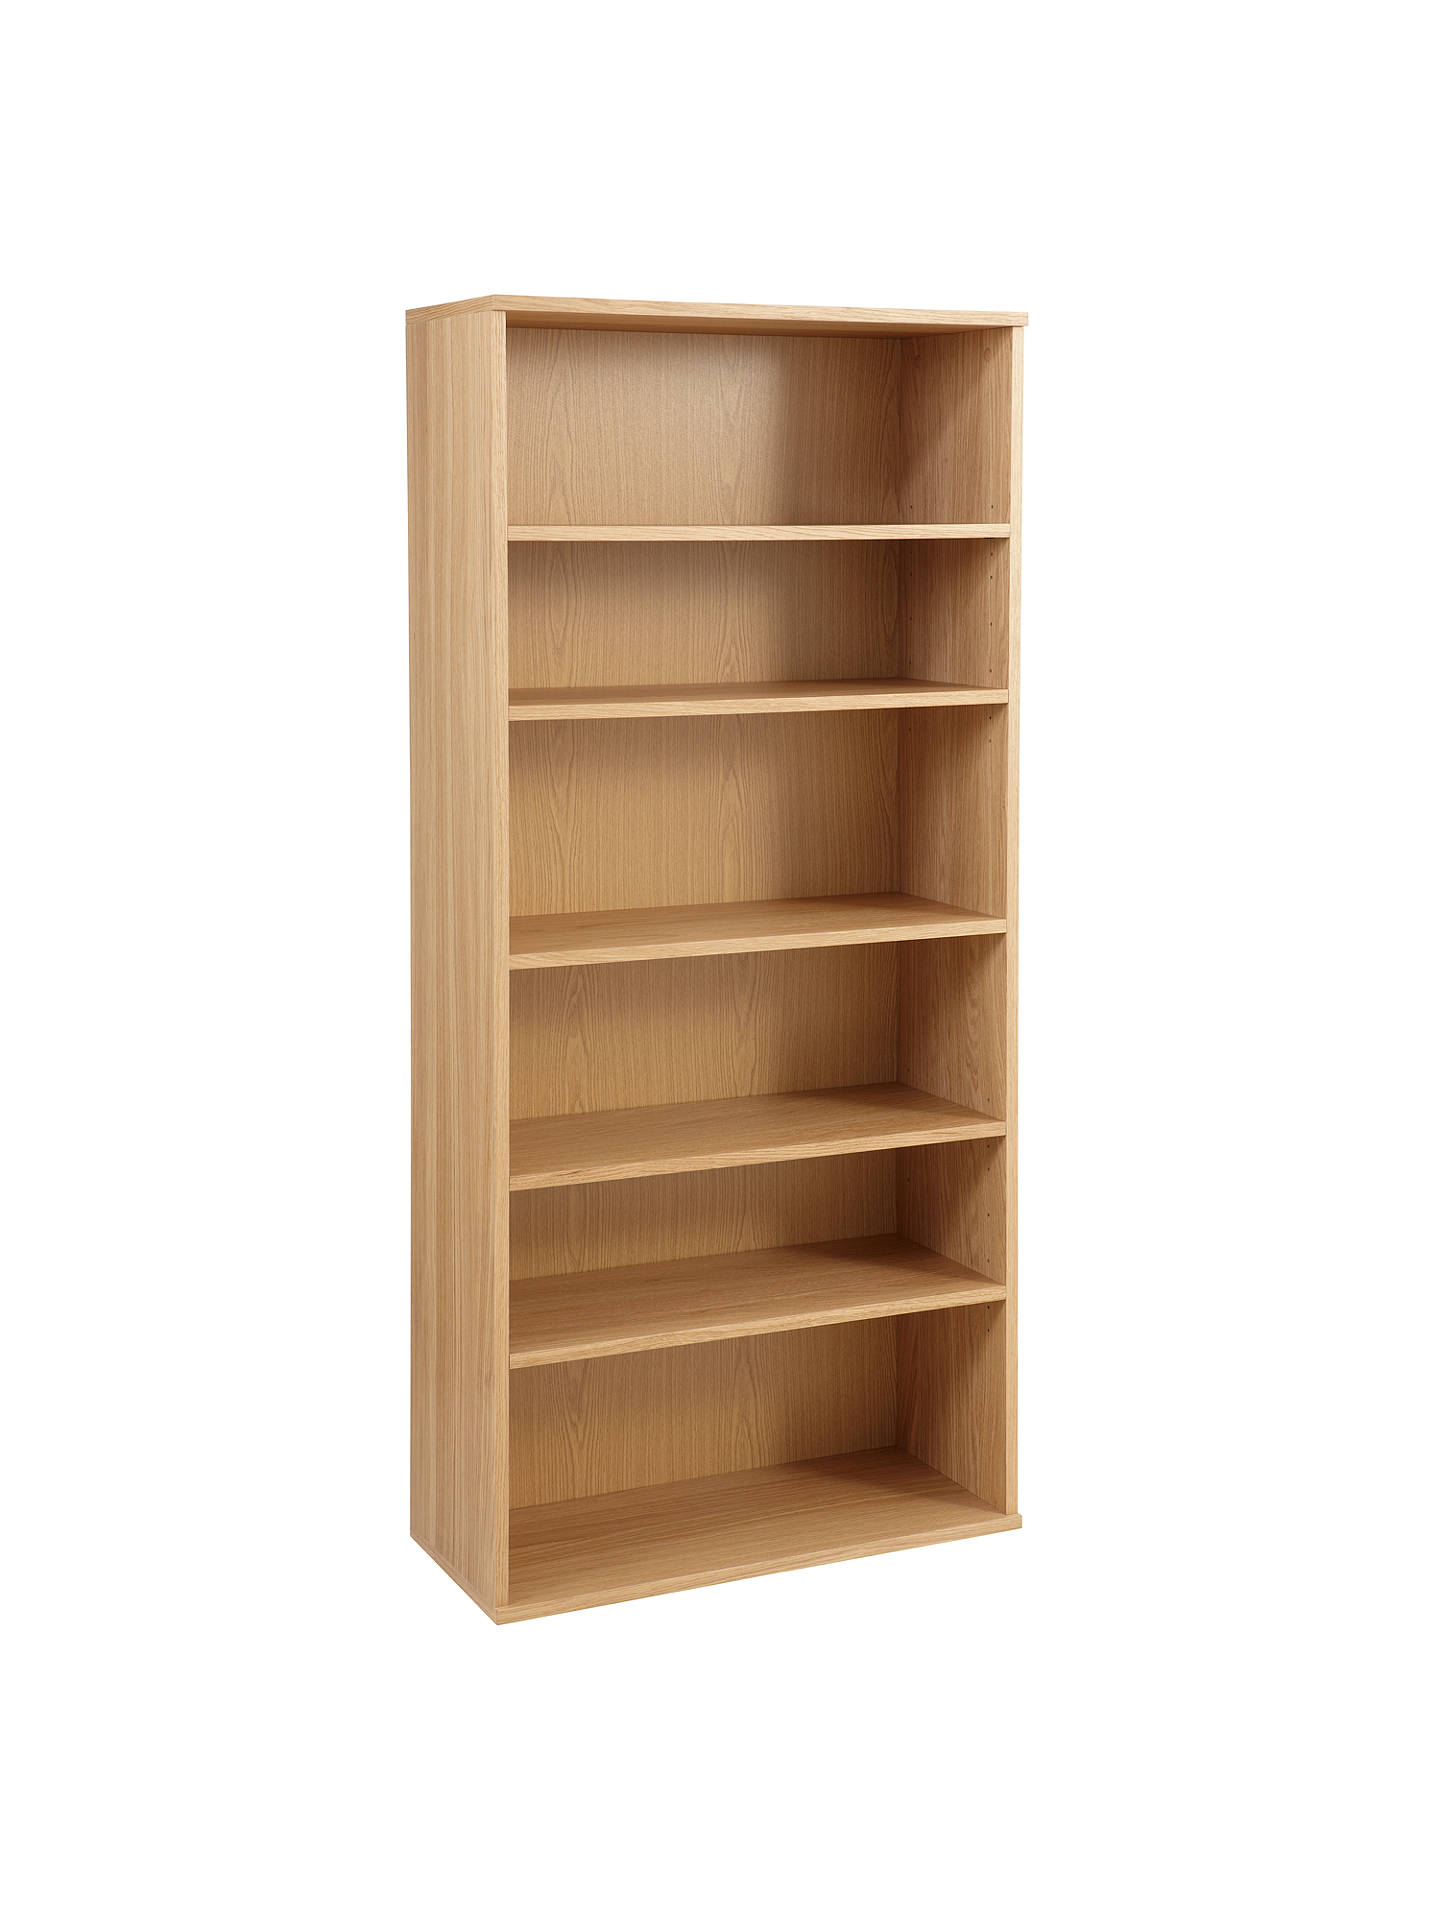 BuyJohn Lewis Partners Abacus 5 Shelf Bookcase FSC Certified Oak Online At